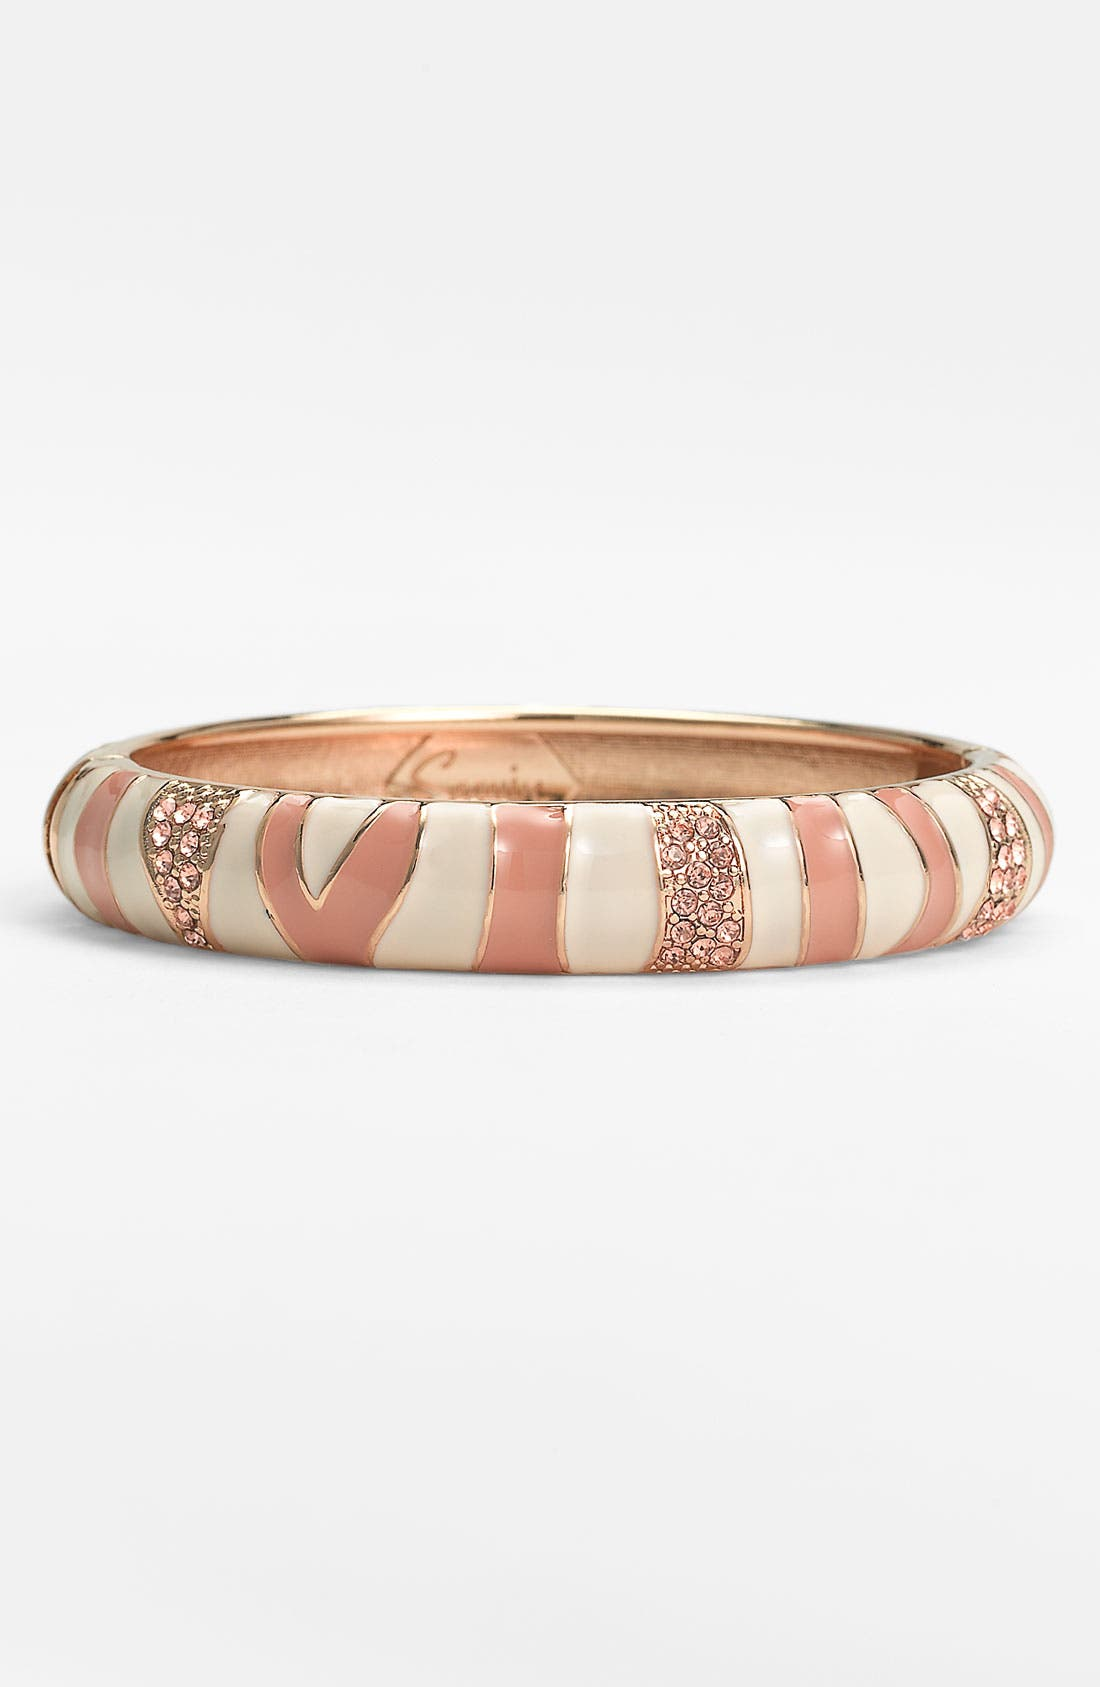 Alternate Image 1 Selected - Sequin Medium Zebra Enamel Bangle